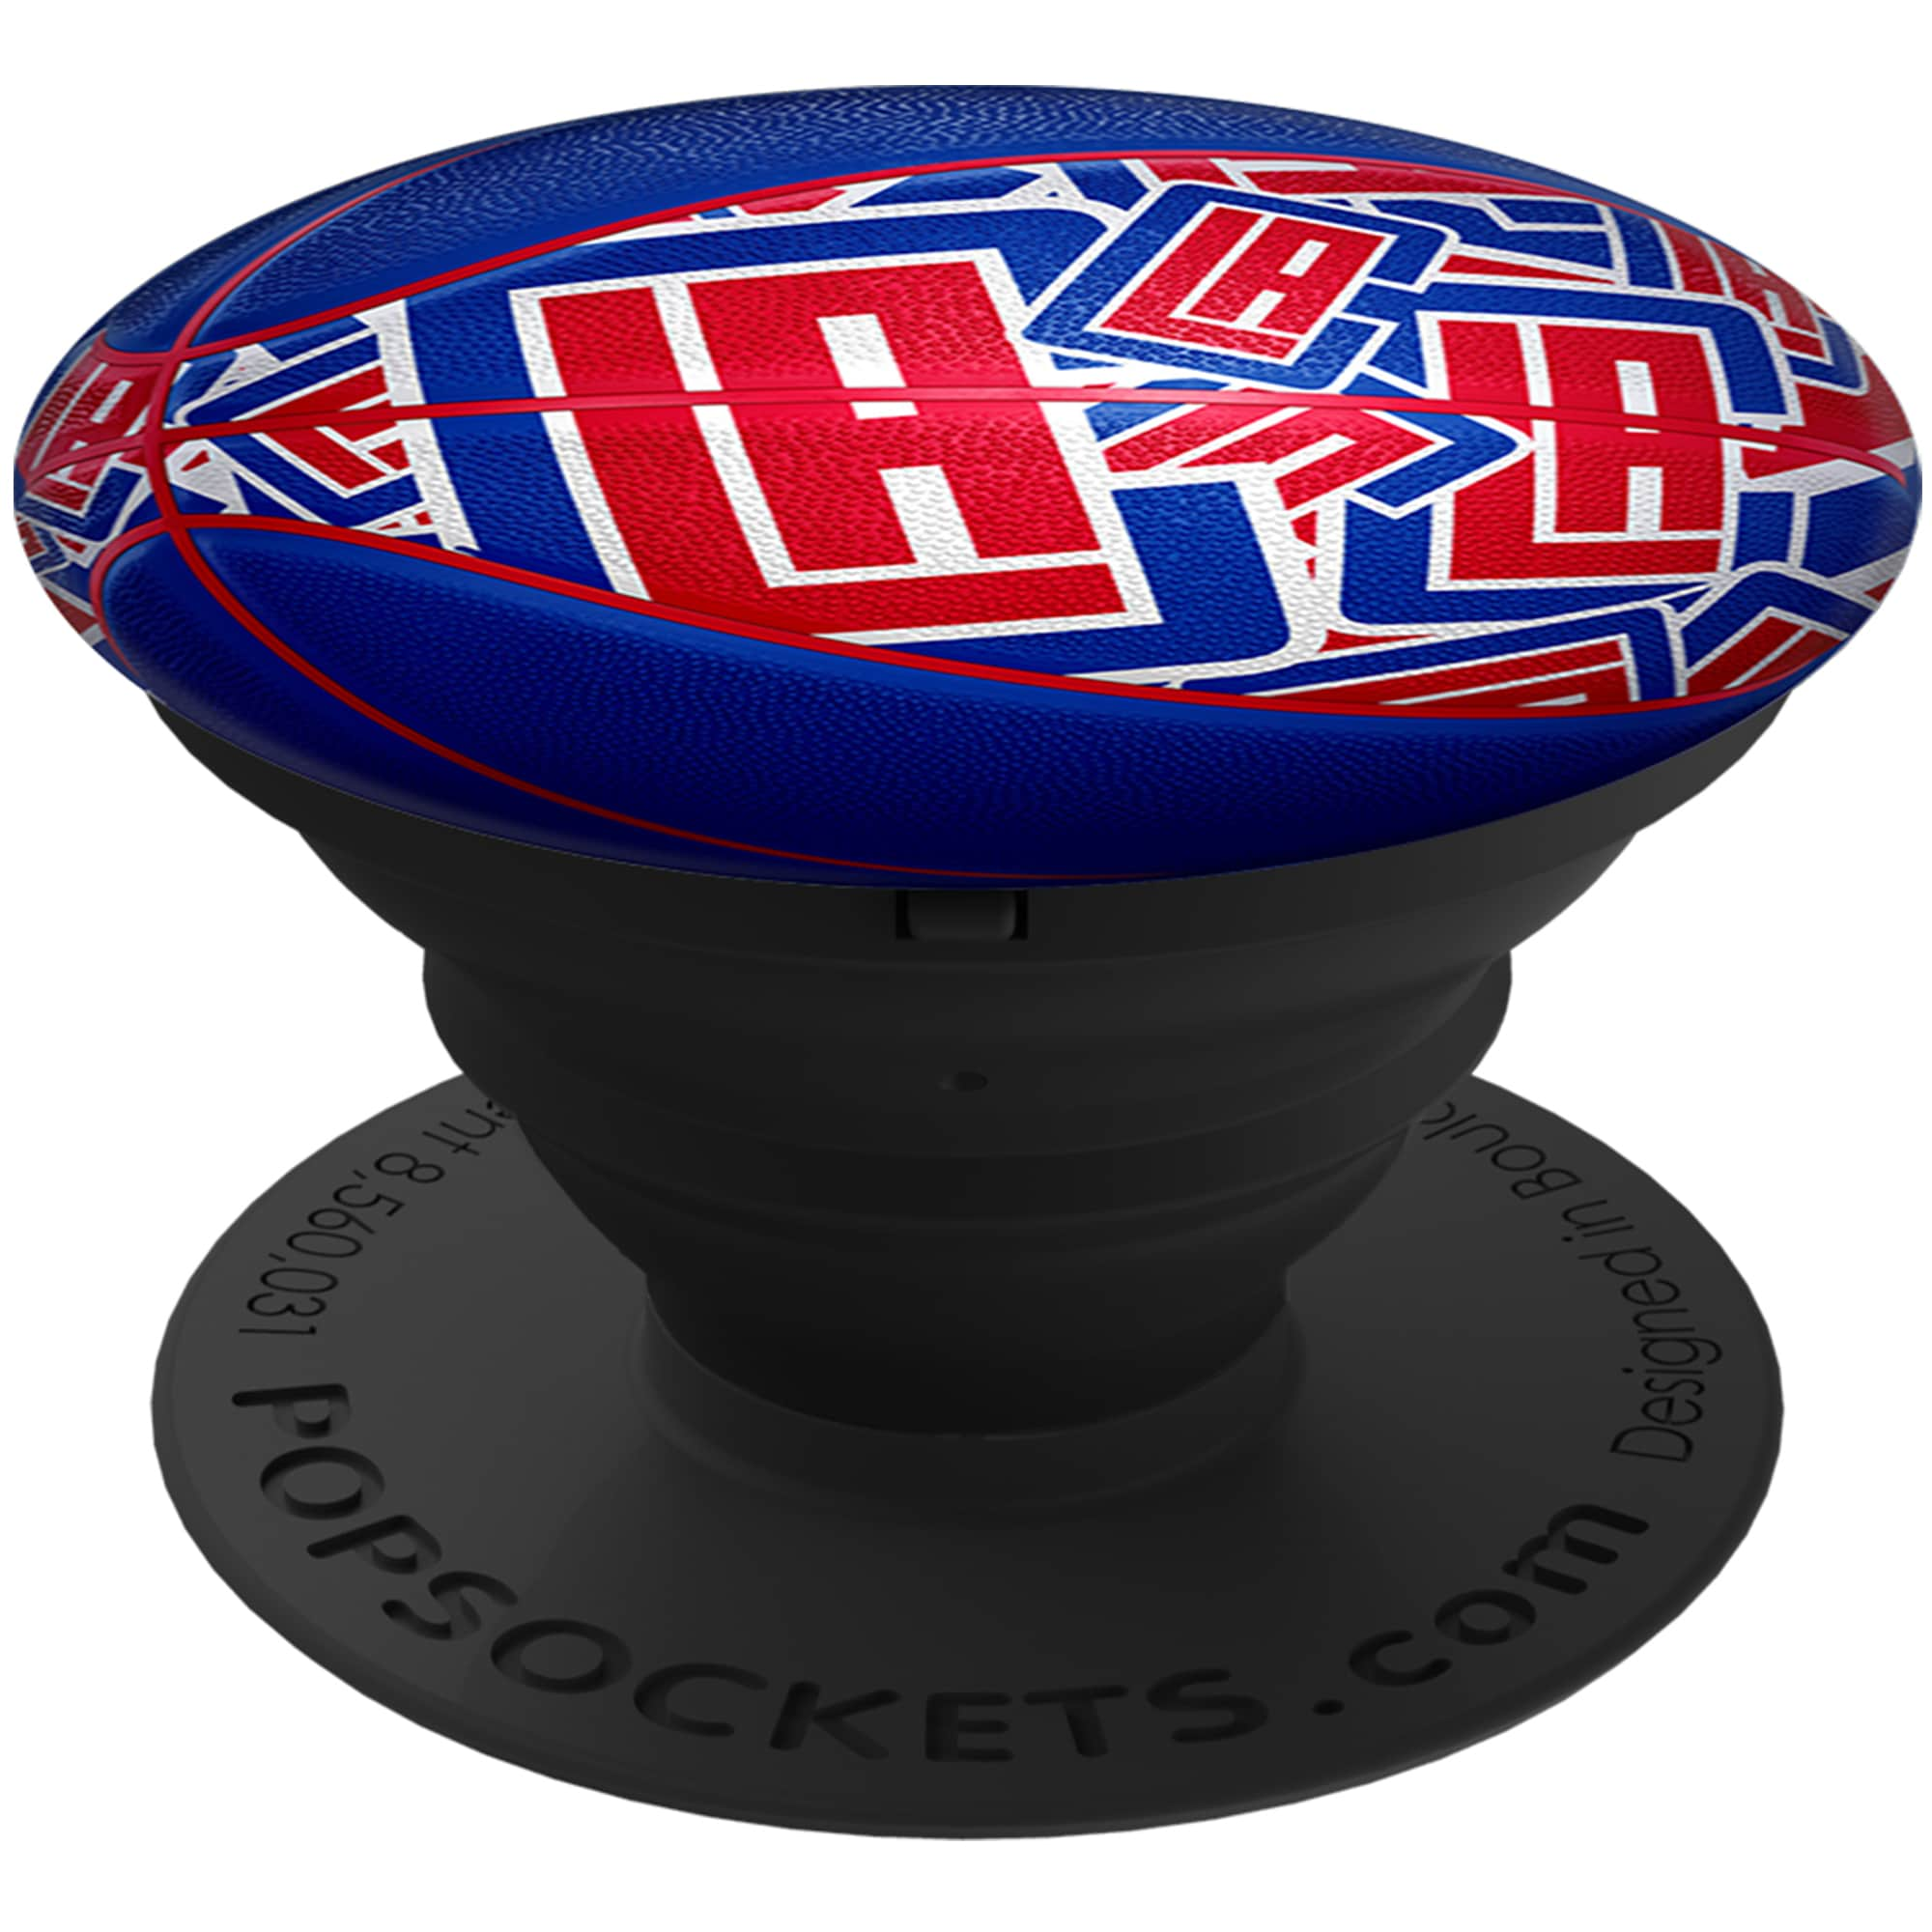 LA Clippers PopSockets Baller Logo Cell Phone Accessory